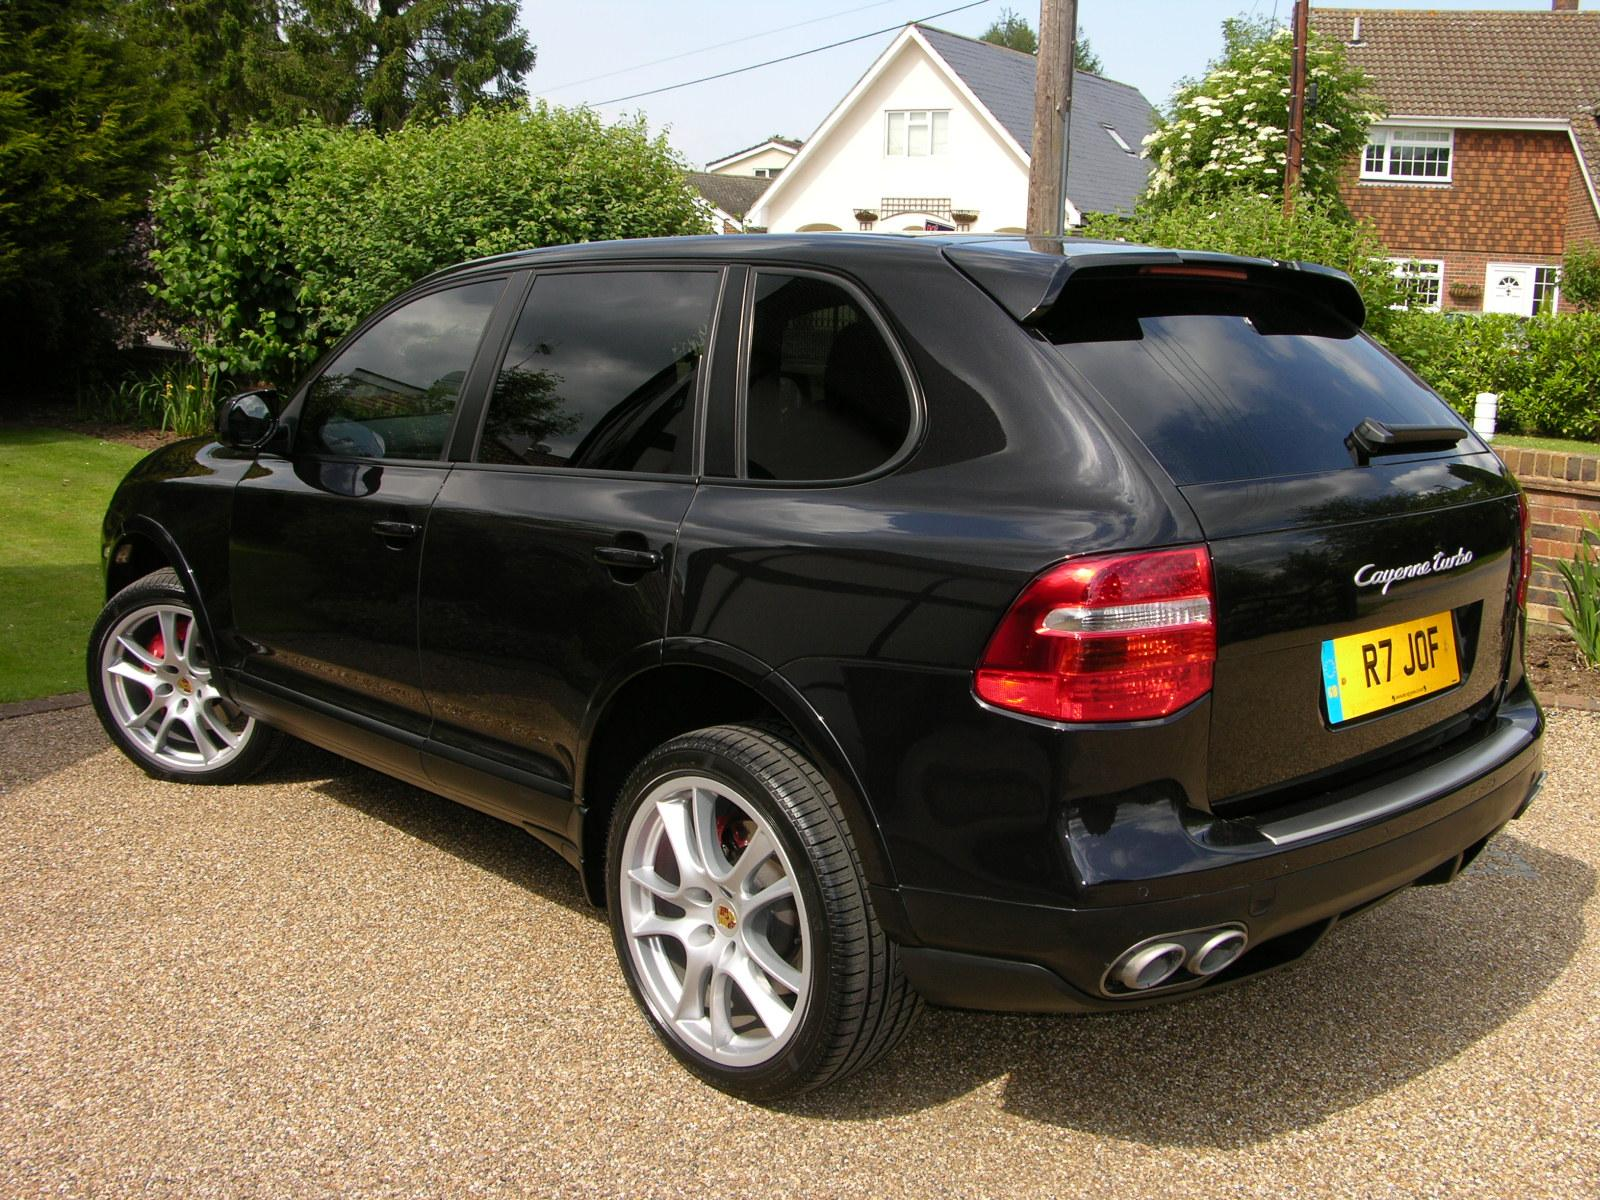 file 2007 porsche cayenne turbo flickr the car spy 17 jpg wikimedia commons. Black Bedroom Furniture Sets. Home Design Ideas